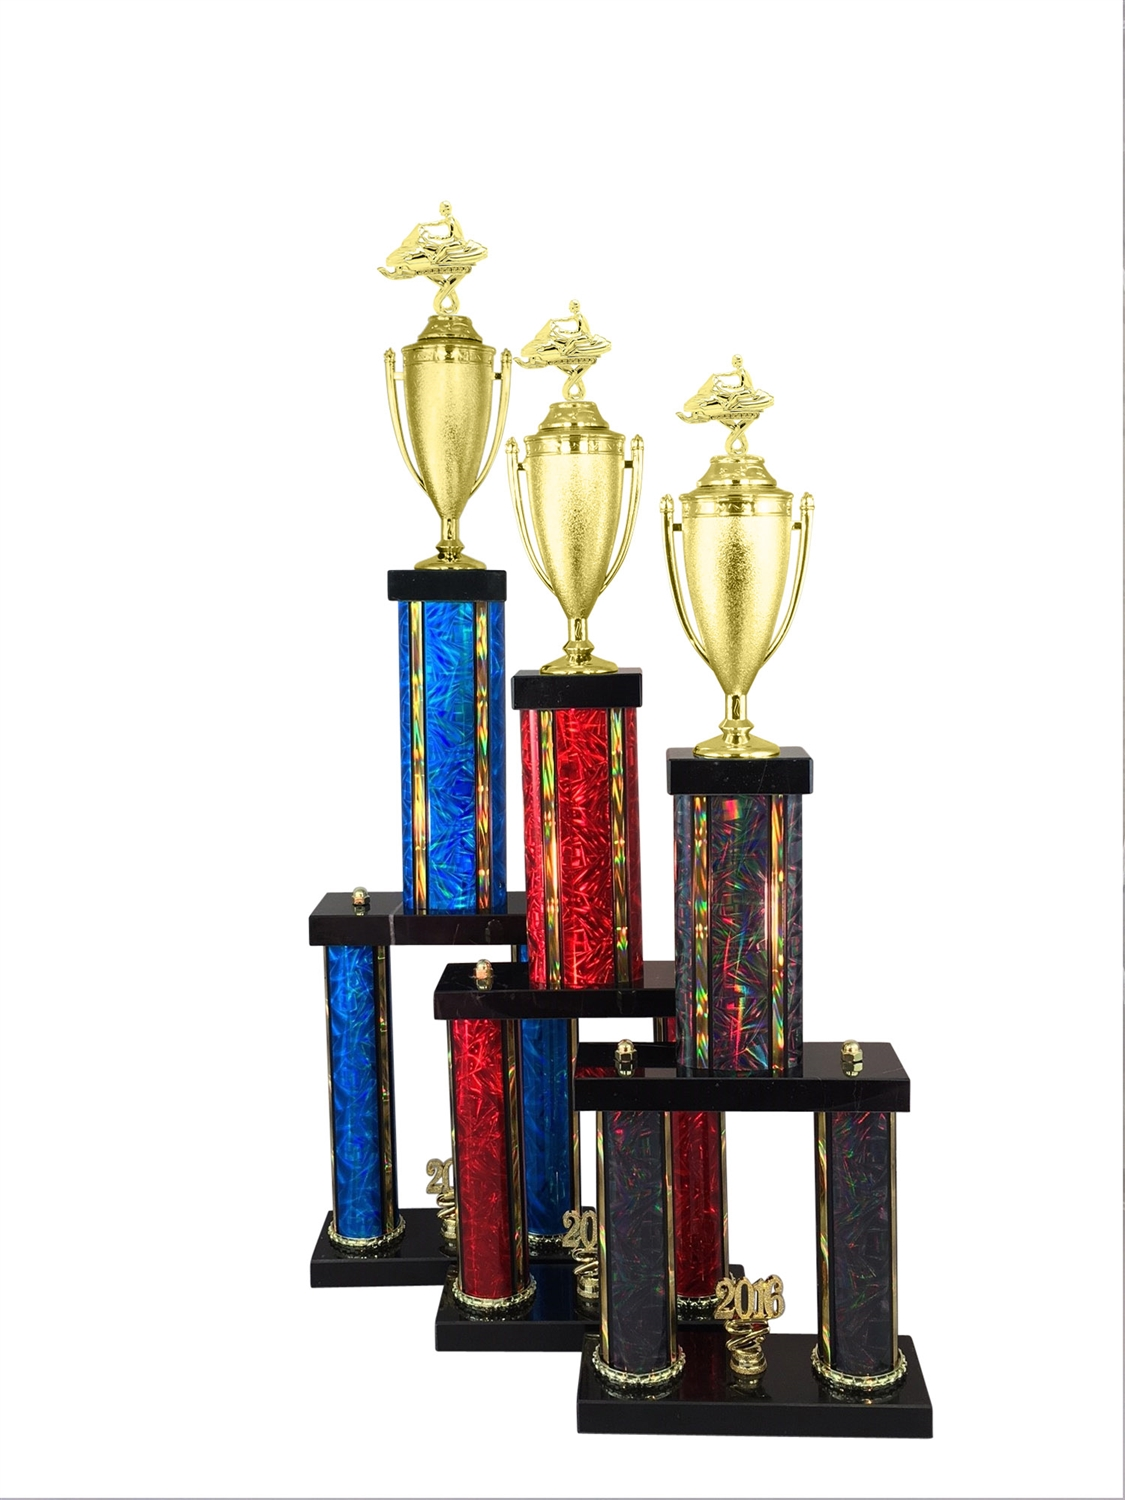 Snowmobile Trophy Available in 11 Color & 6 Size Options